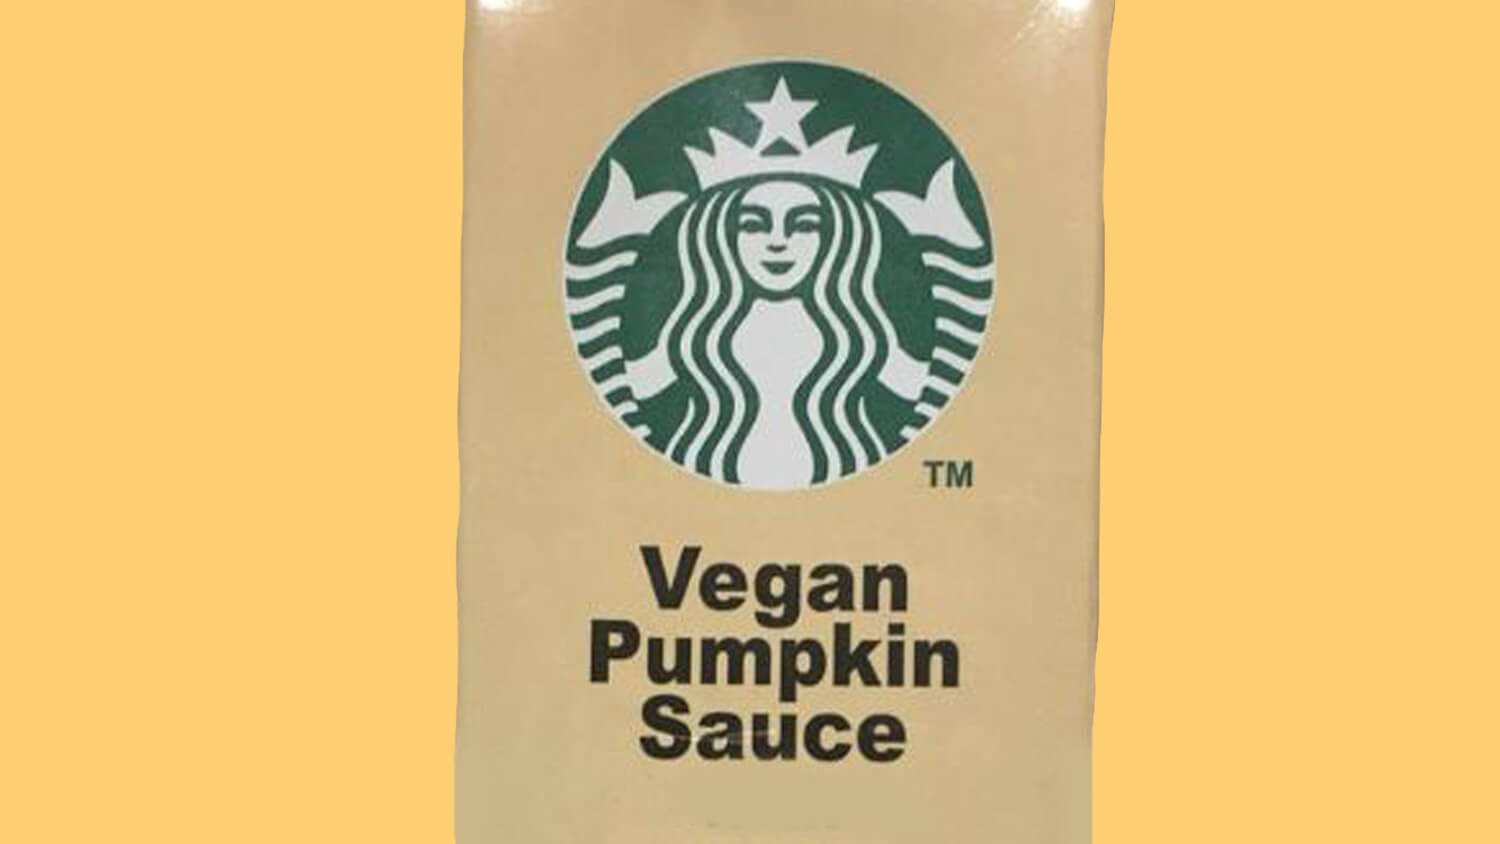 Starbucks Launches Vegan Pumpkin Spice Syrup Across Europe